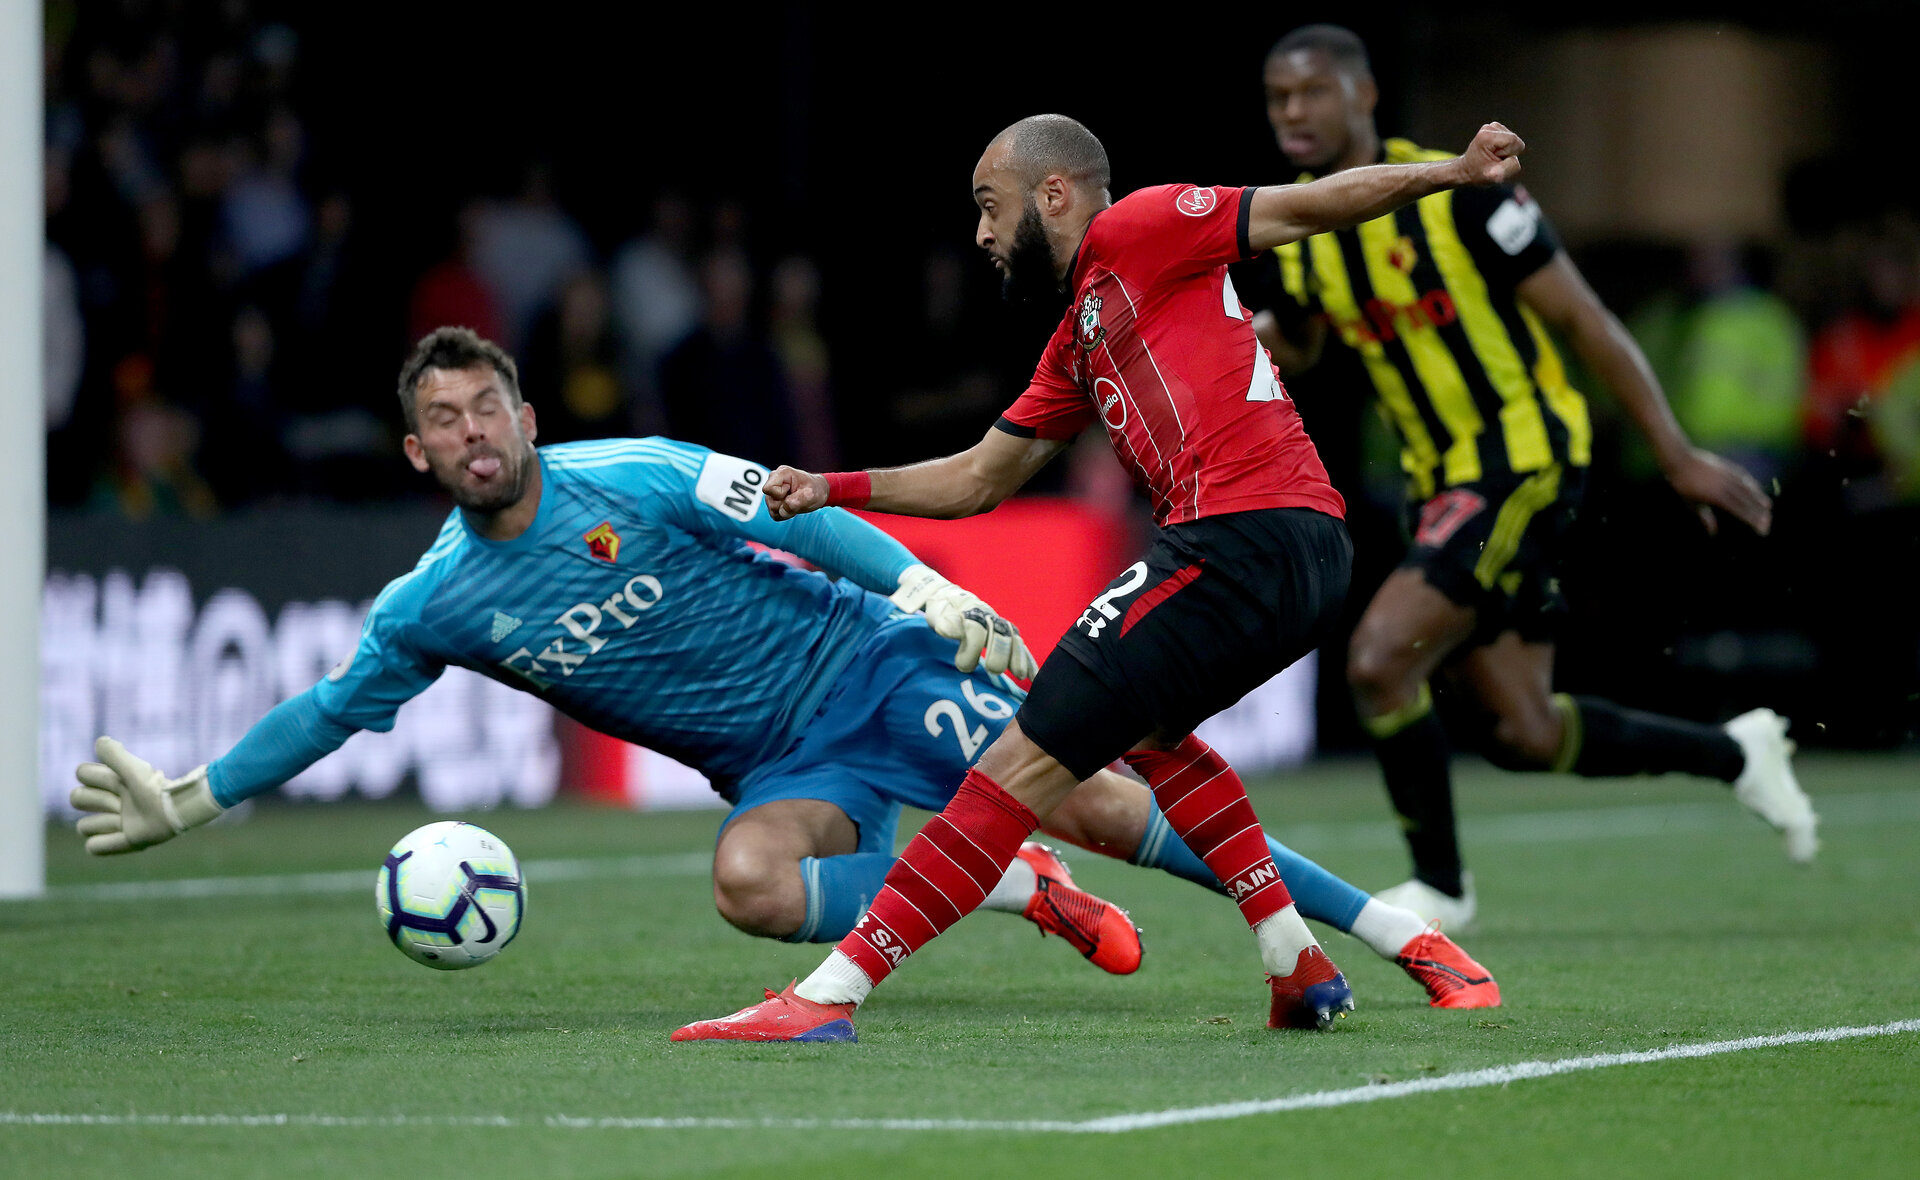 WATFORD, ENGLAND - APRIL 23: Nathan Redmond(R) of Southampton is denied by Ben Foster of Watfordduring the Premier League match between Watford FC and Southampton FC at Vicarage Road on April 23, 2019 in Watford, United Kingdom. (Photo by Matt Watson/Southampton FC via Getty Images)